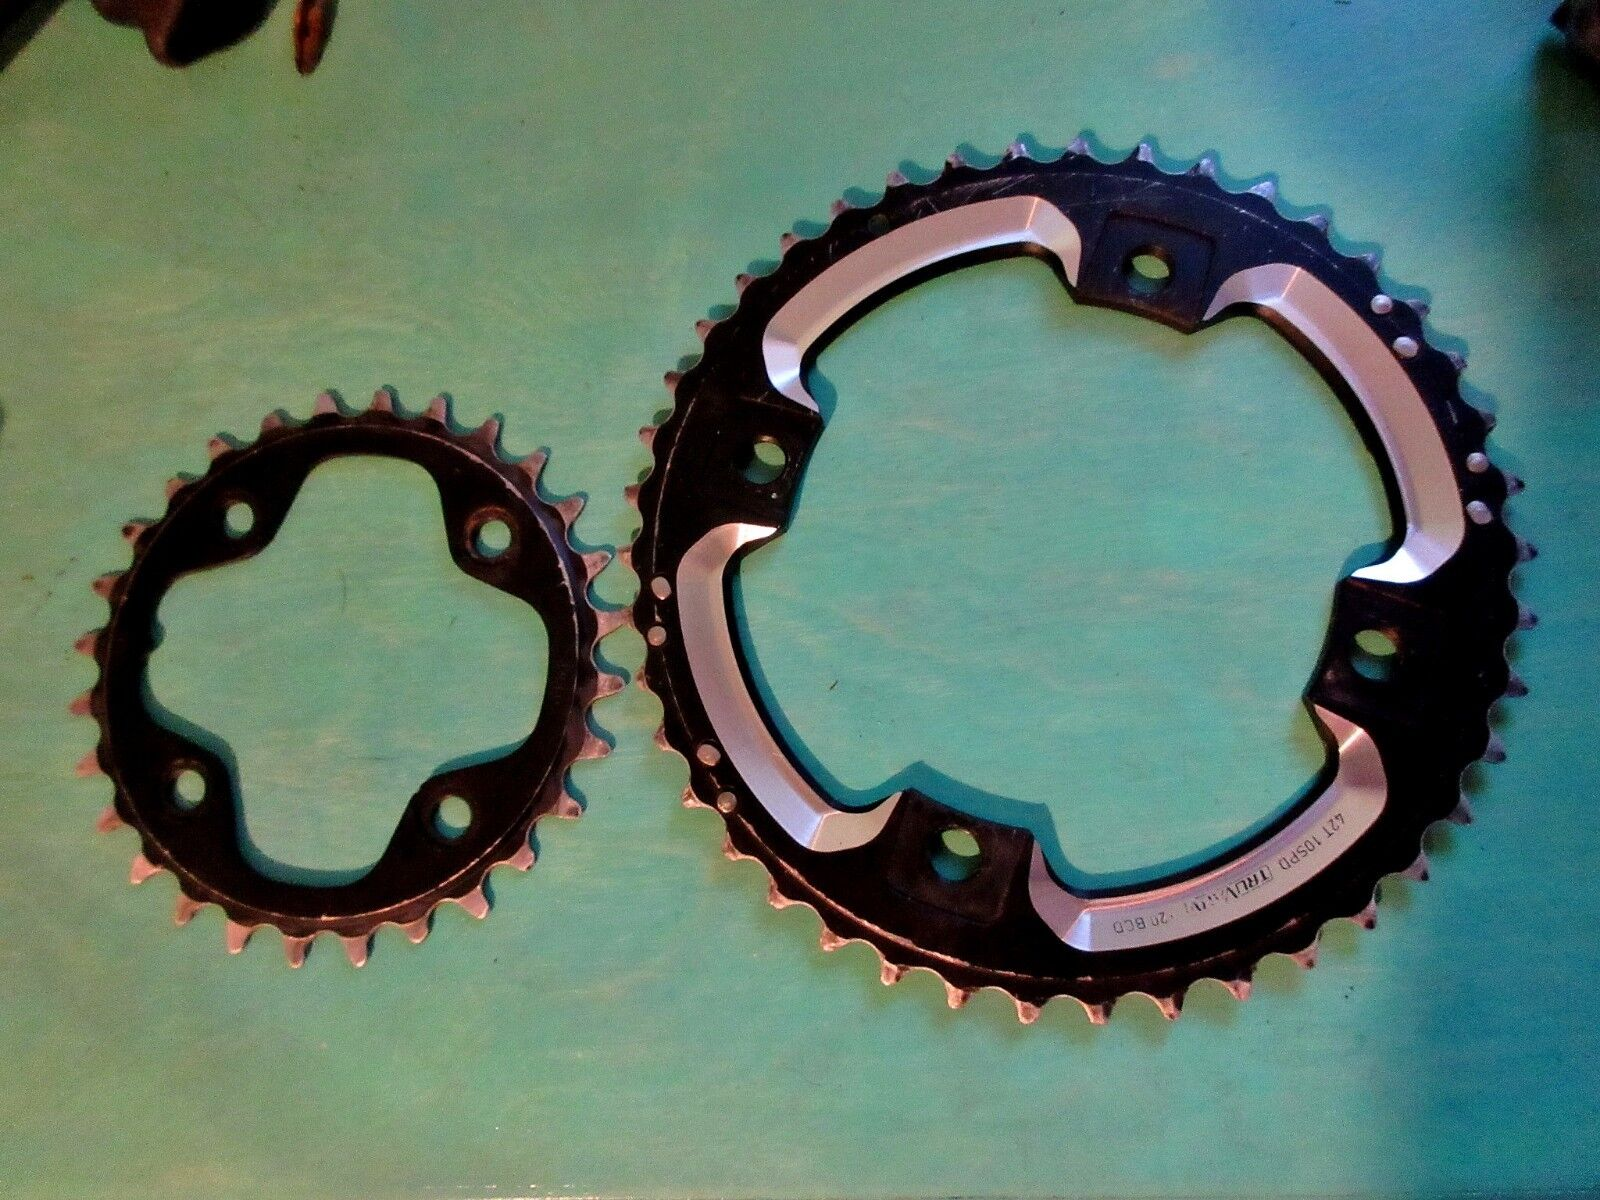 Sram XO 10 speed  chainrings 42 28 Double Chainrings  best reputation